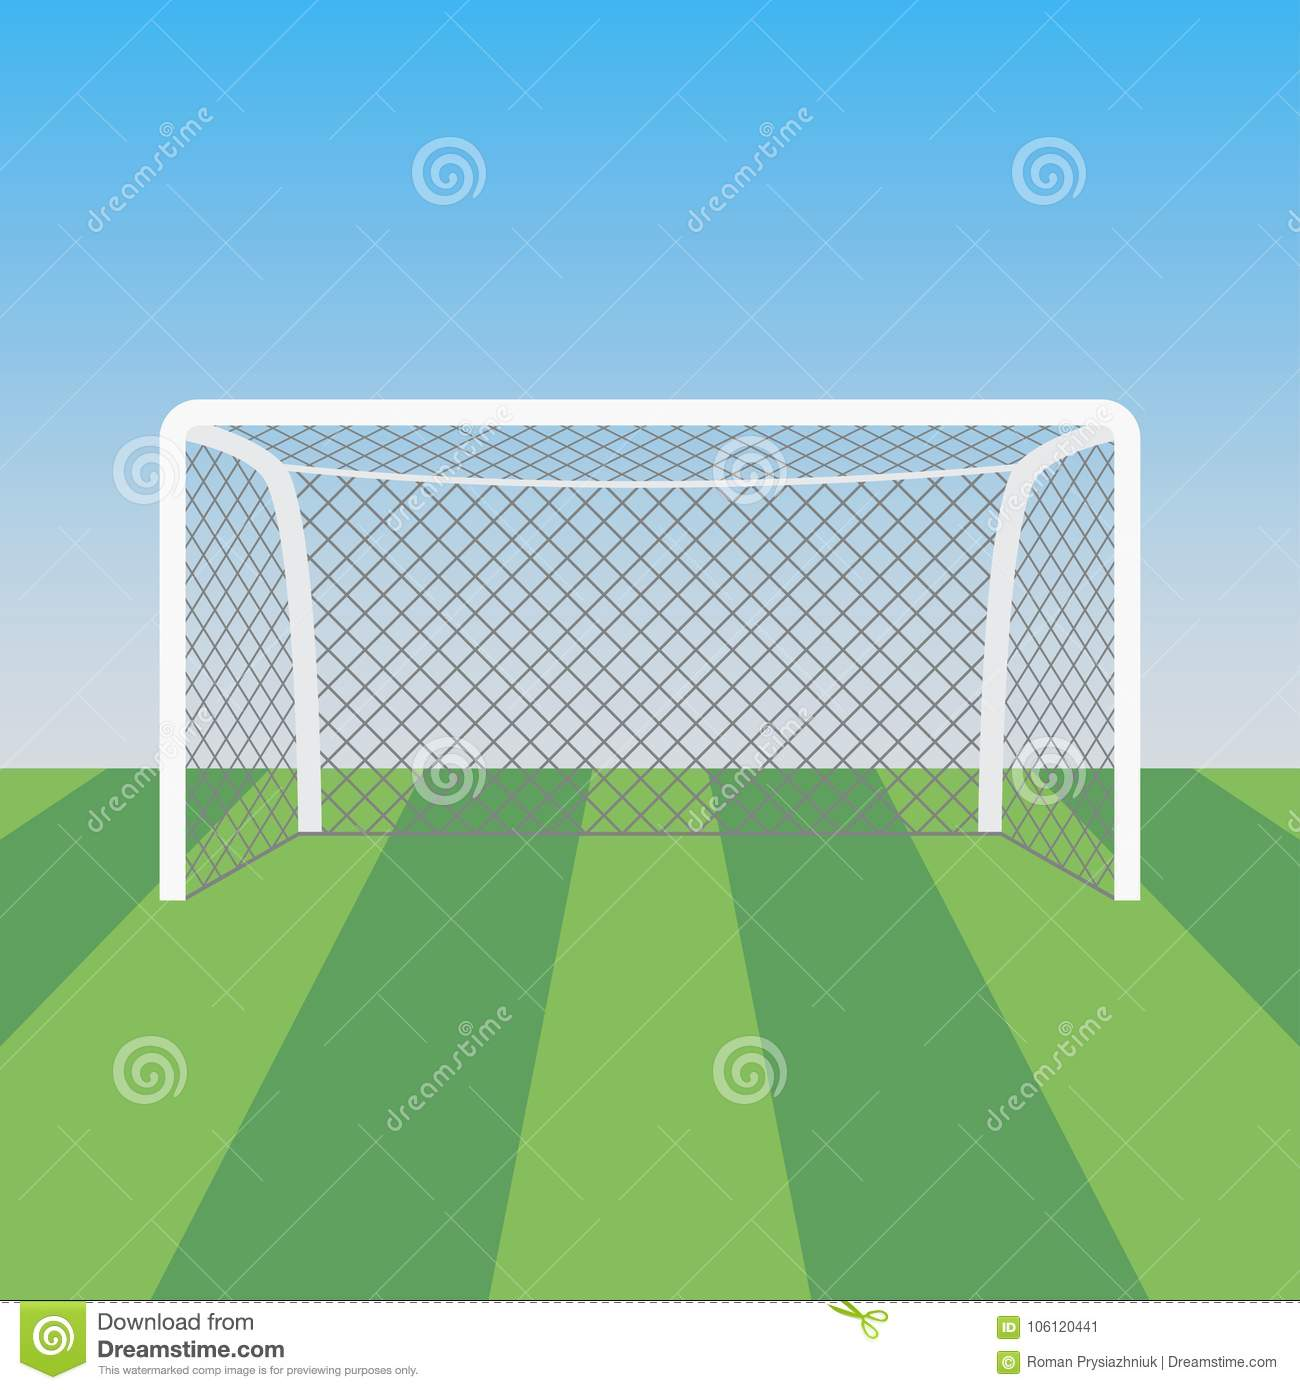 soccer goal and grass in the football stadium vector illustration